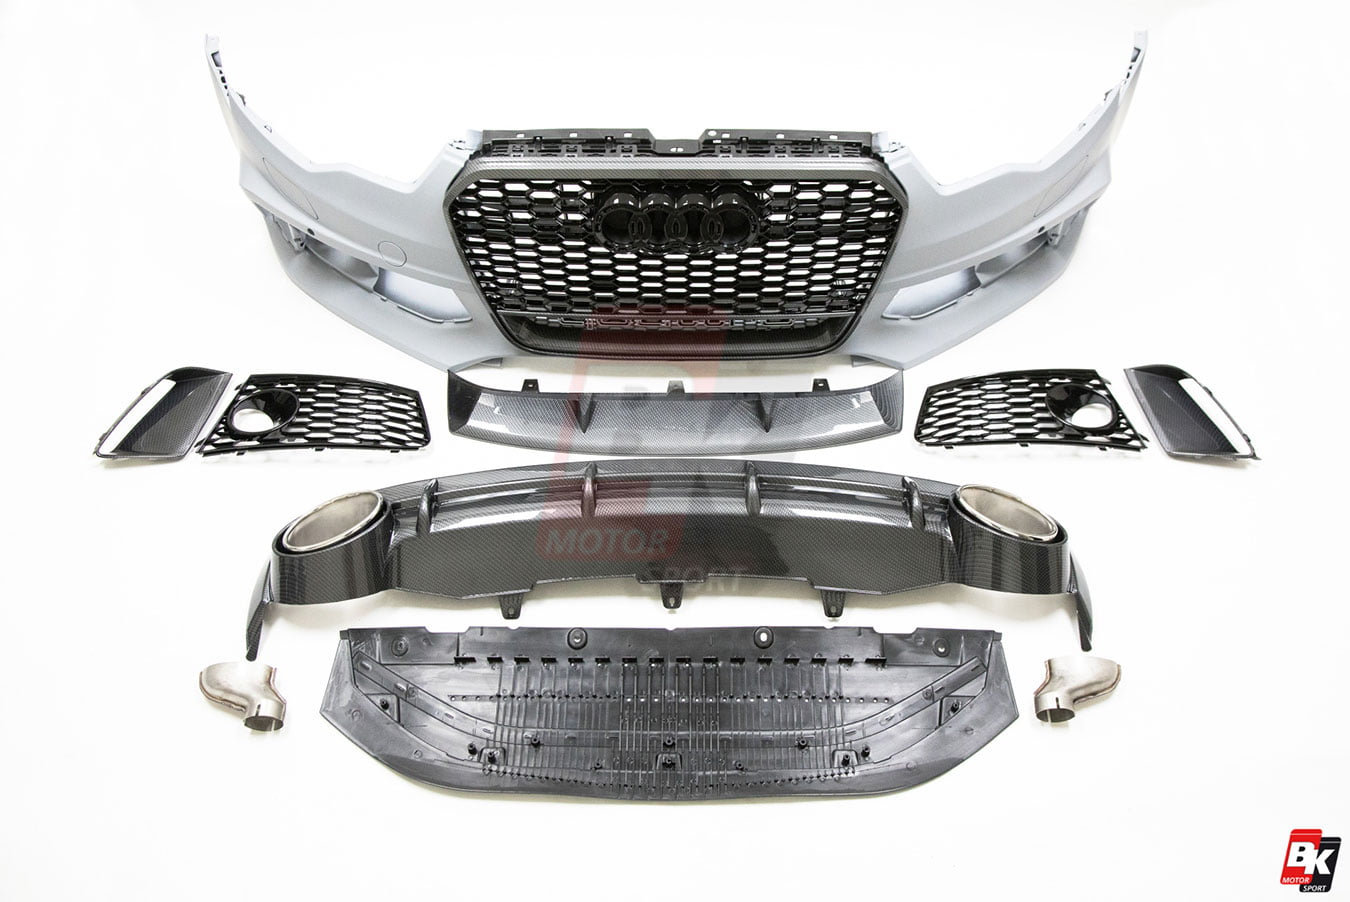 Bkm Front Bumper Kit With Front Grille And Rear Diffuser